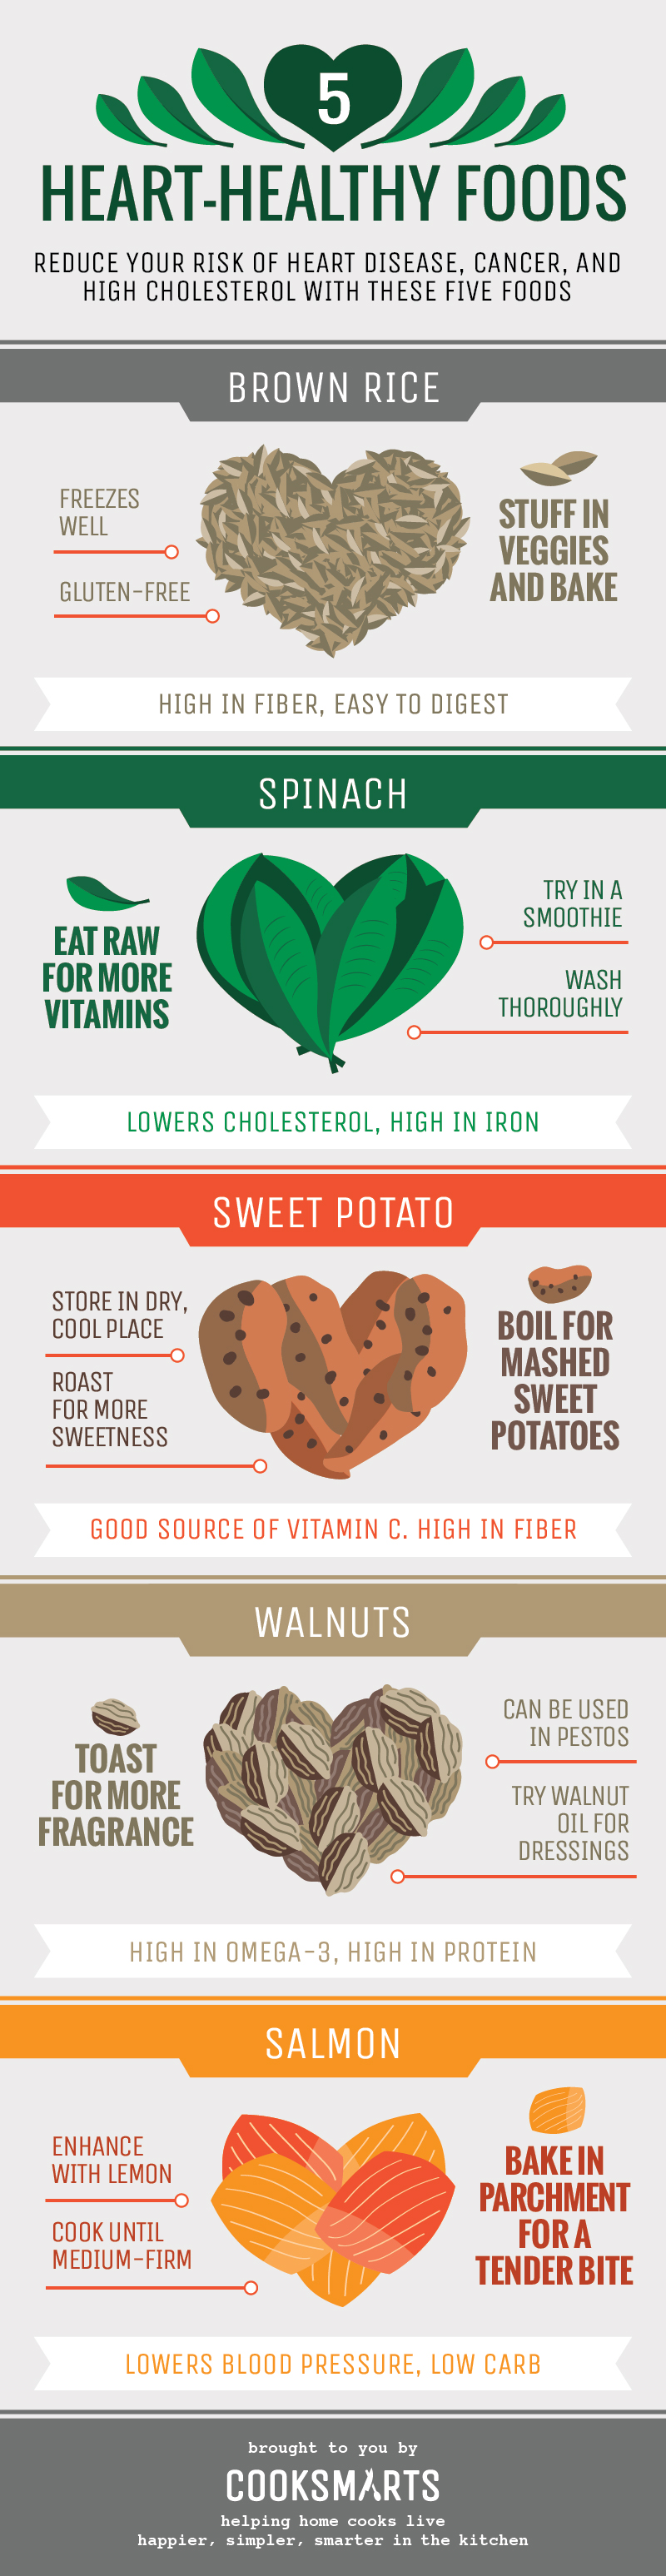 cholesterol_lowering_Foods_Infographic